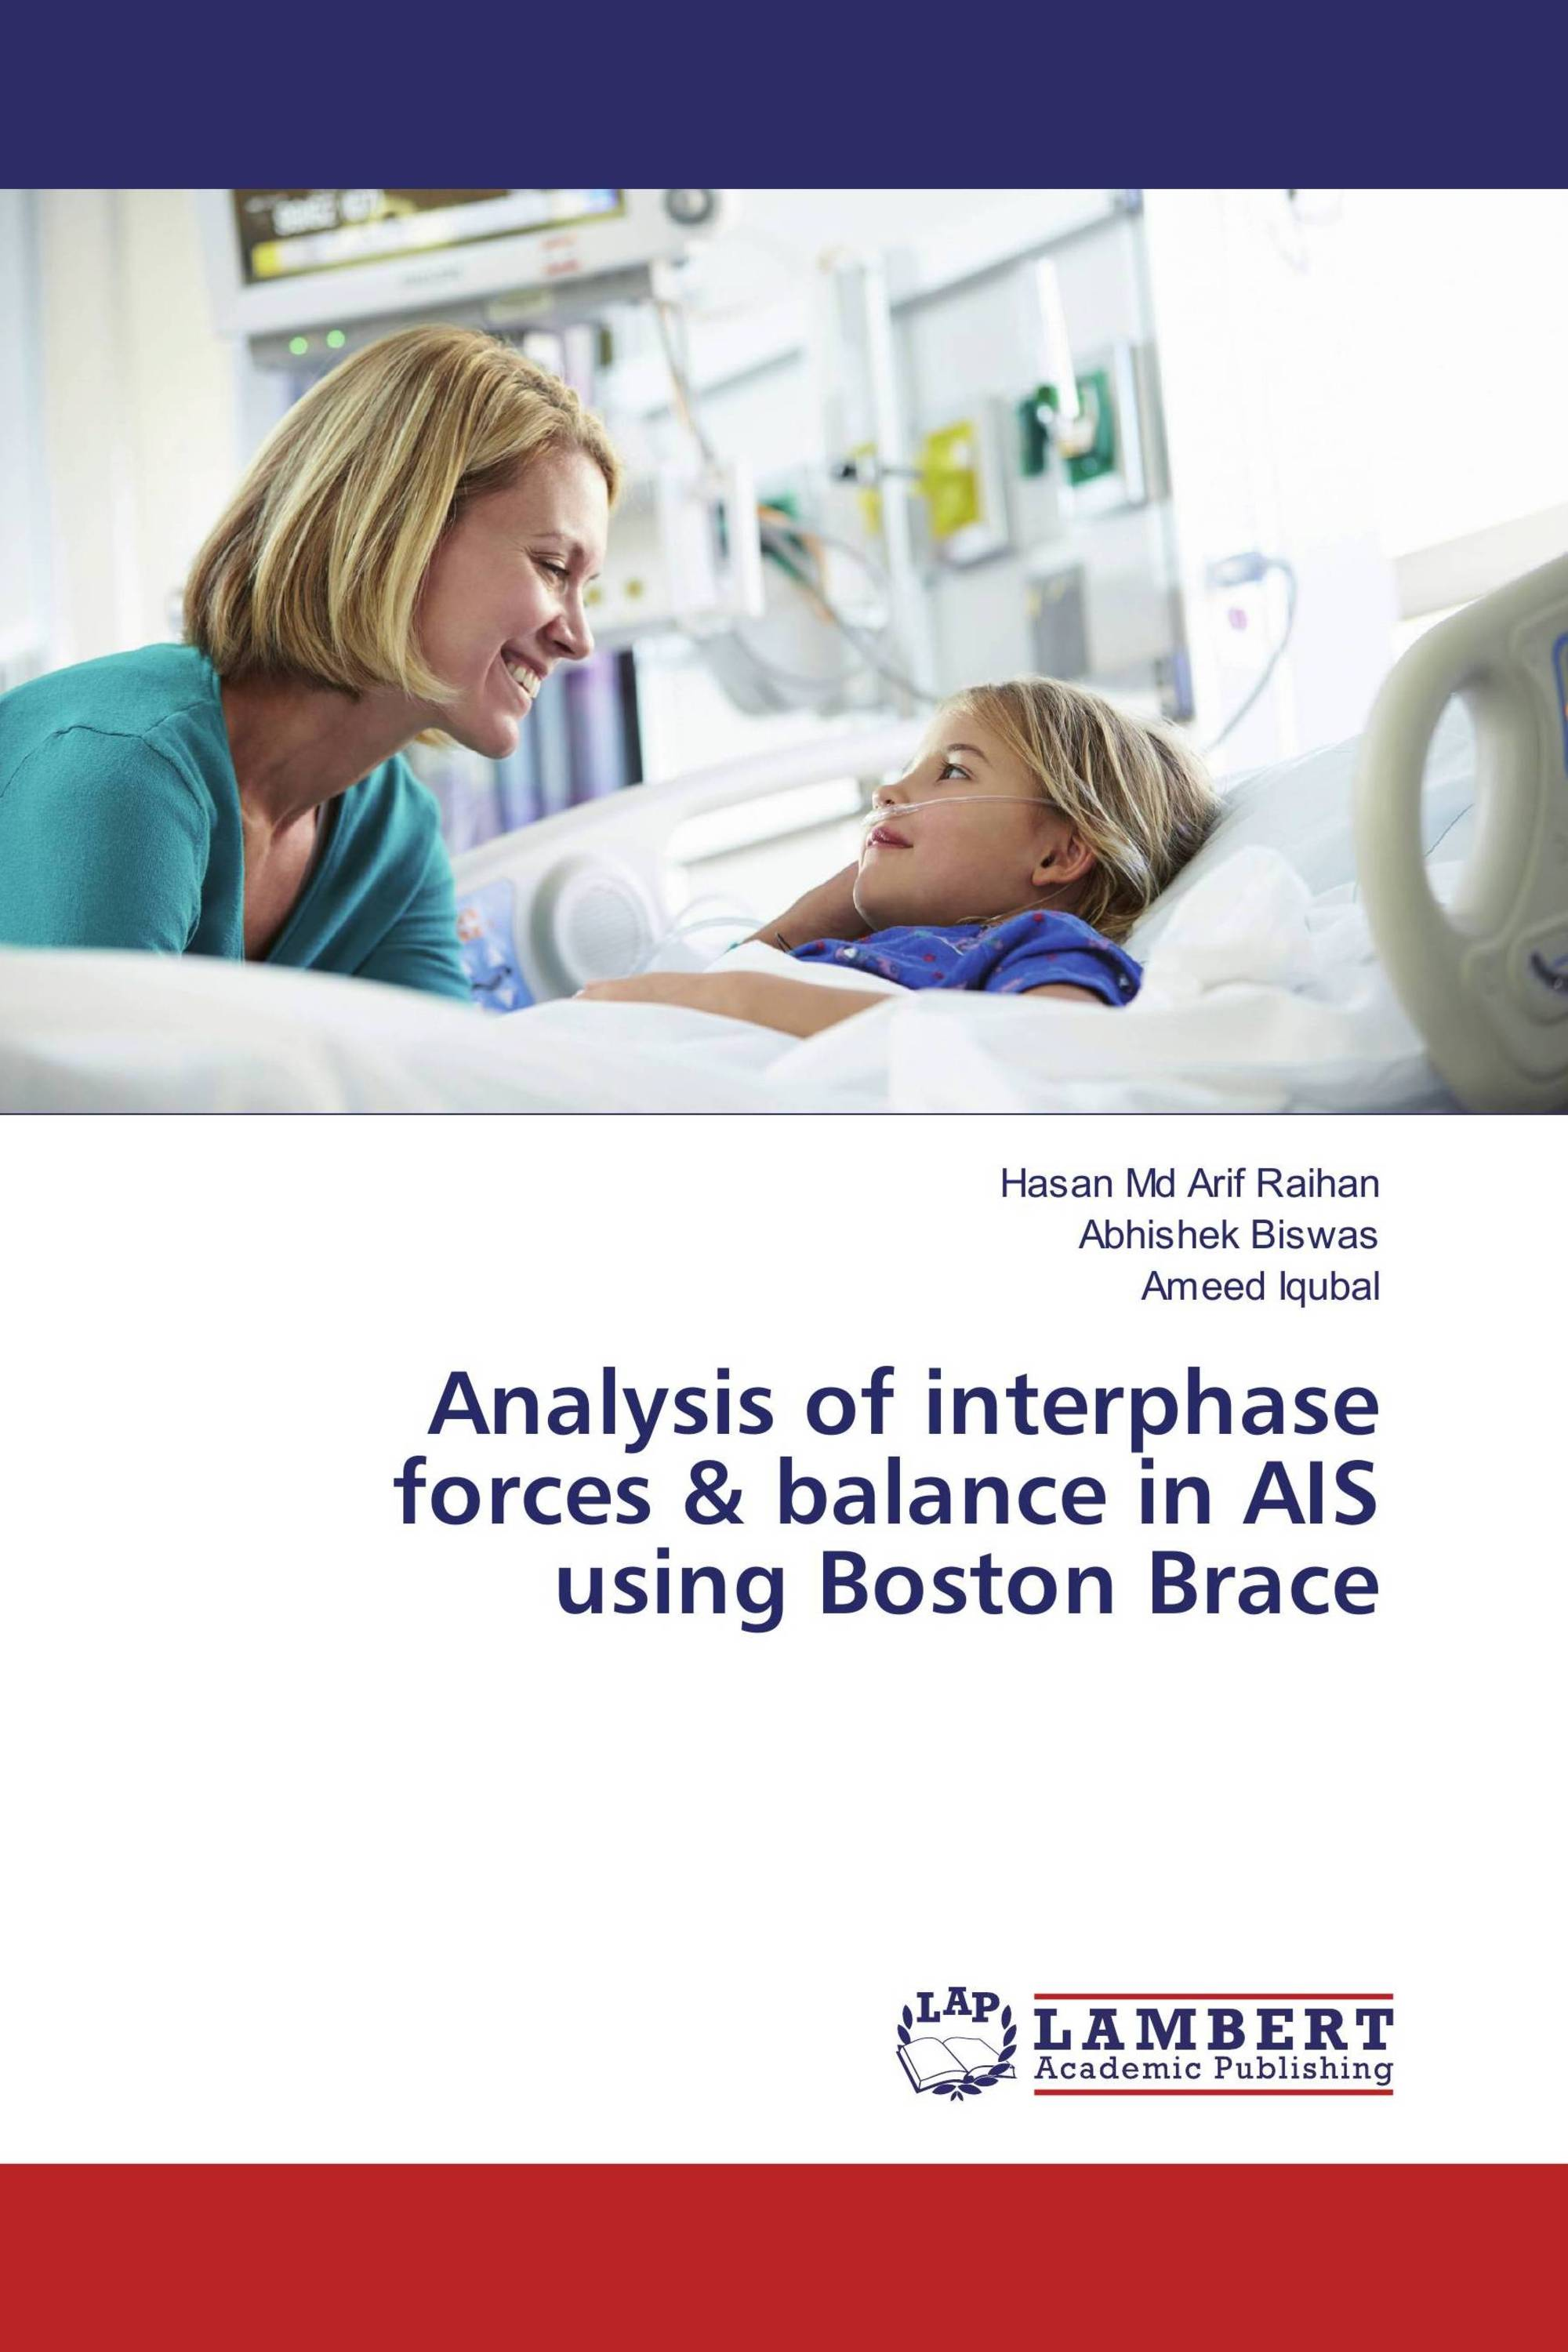 Analysis of interphase forces & balance in AIS using Boston